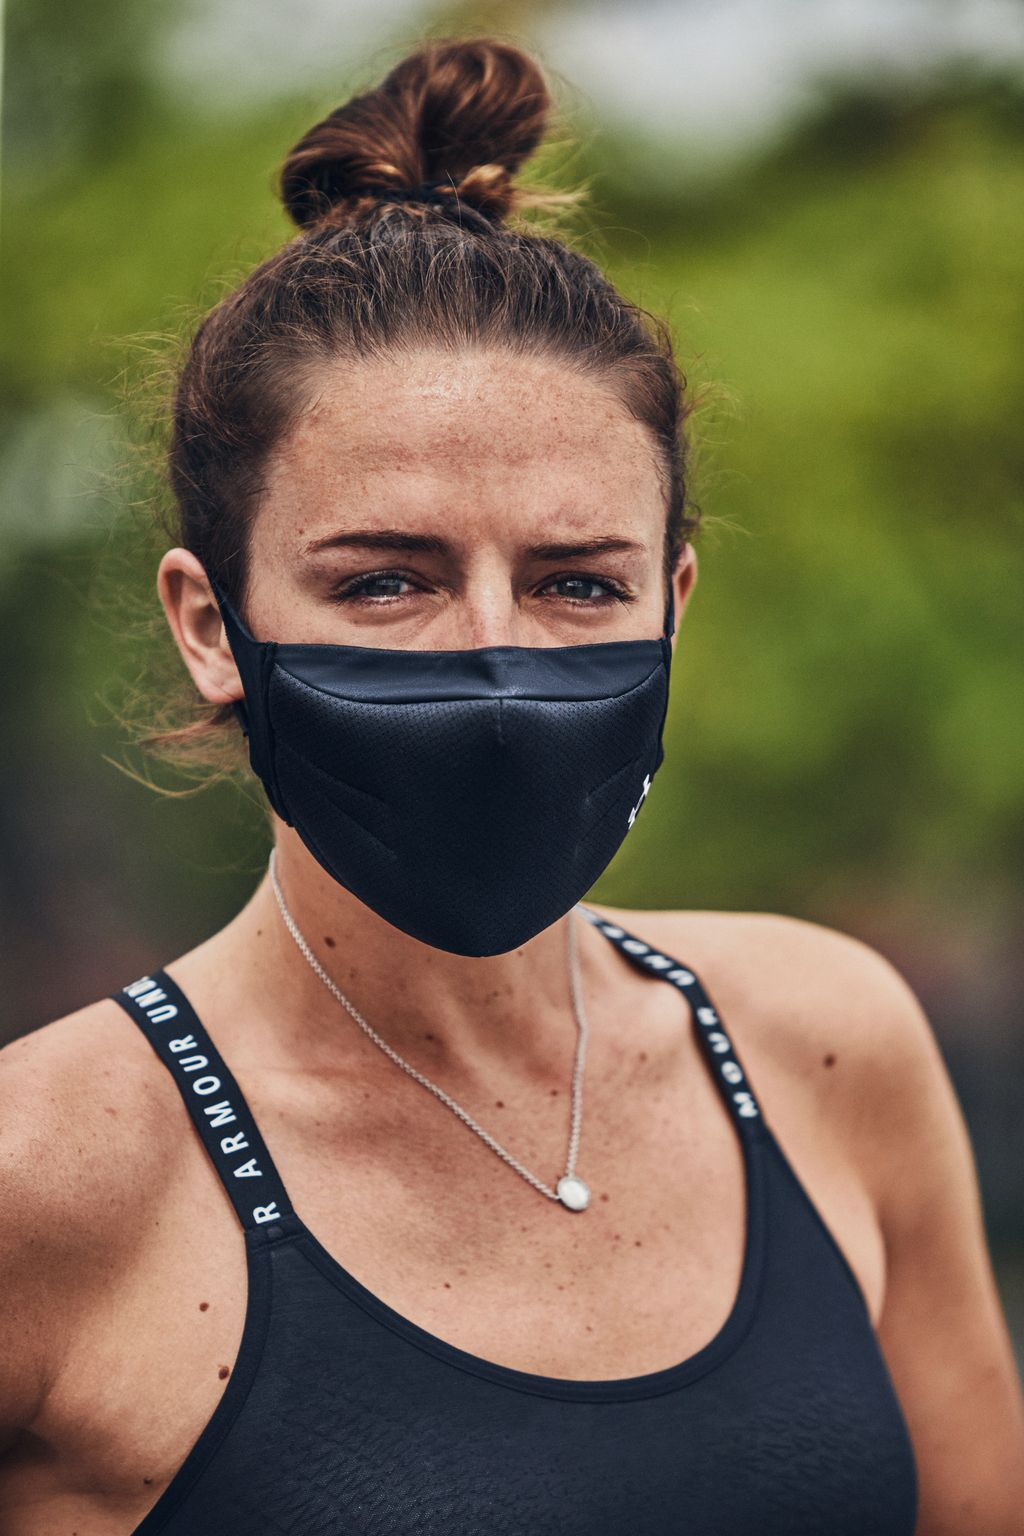 UA SPORTSMASK - best facemask for athletes workouts and running in 2020 |  Athlete workout, Face mask, Tennis clothes